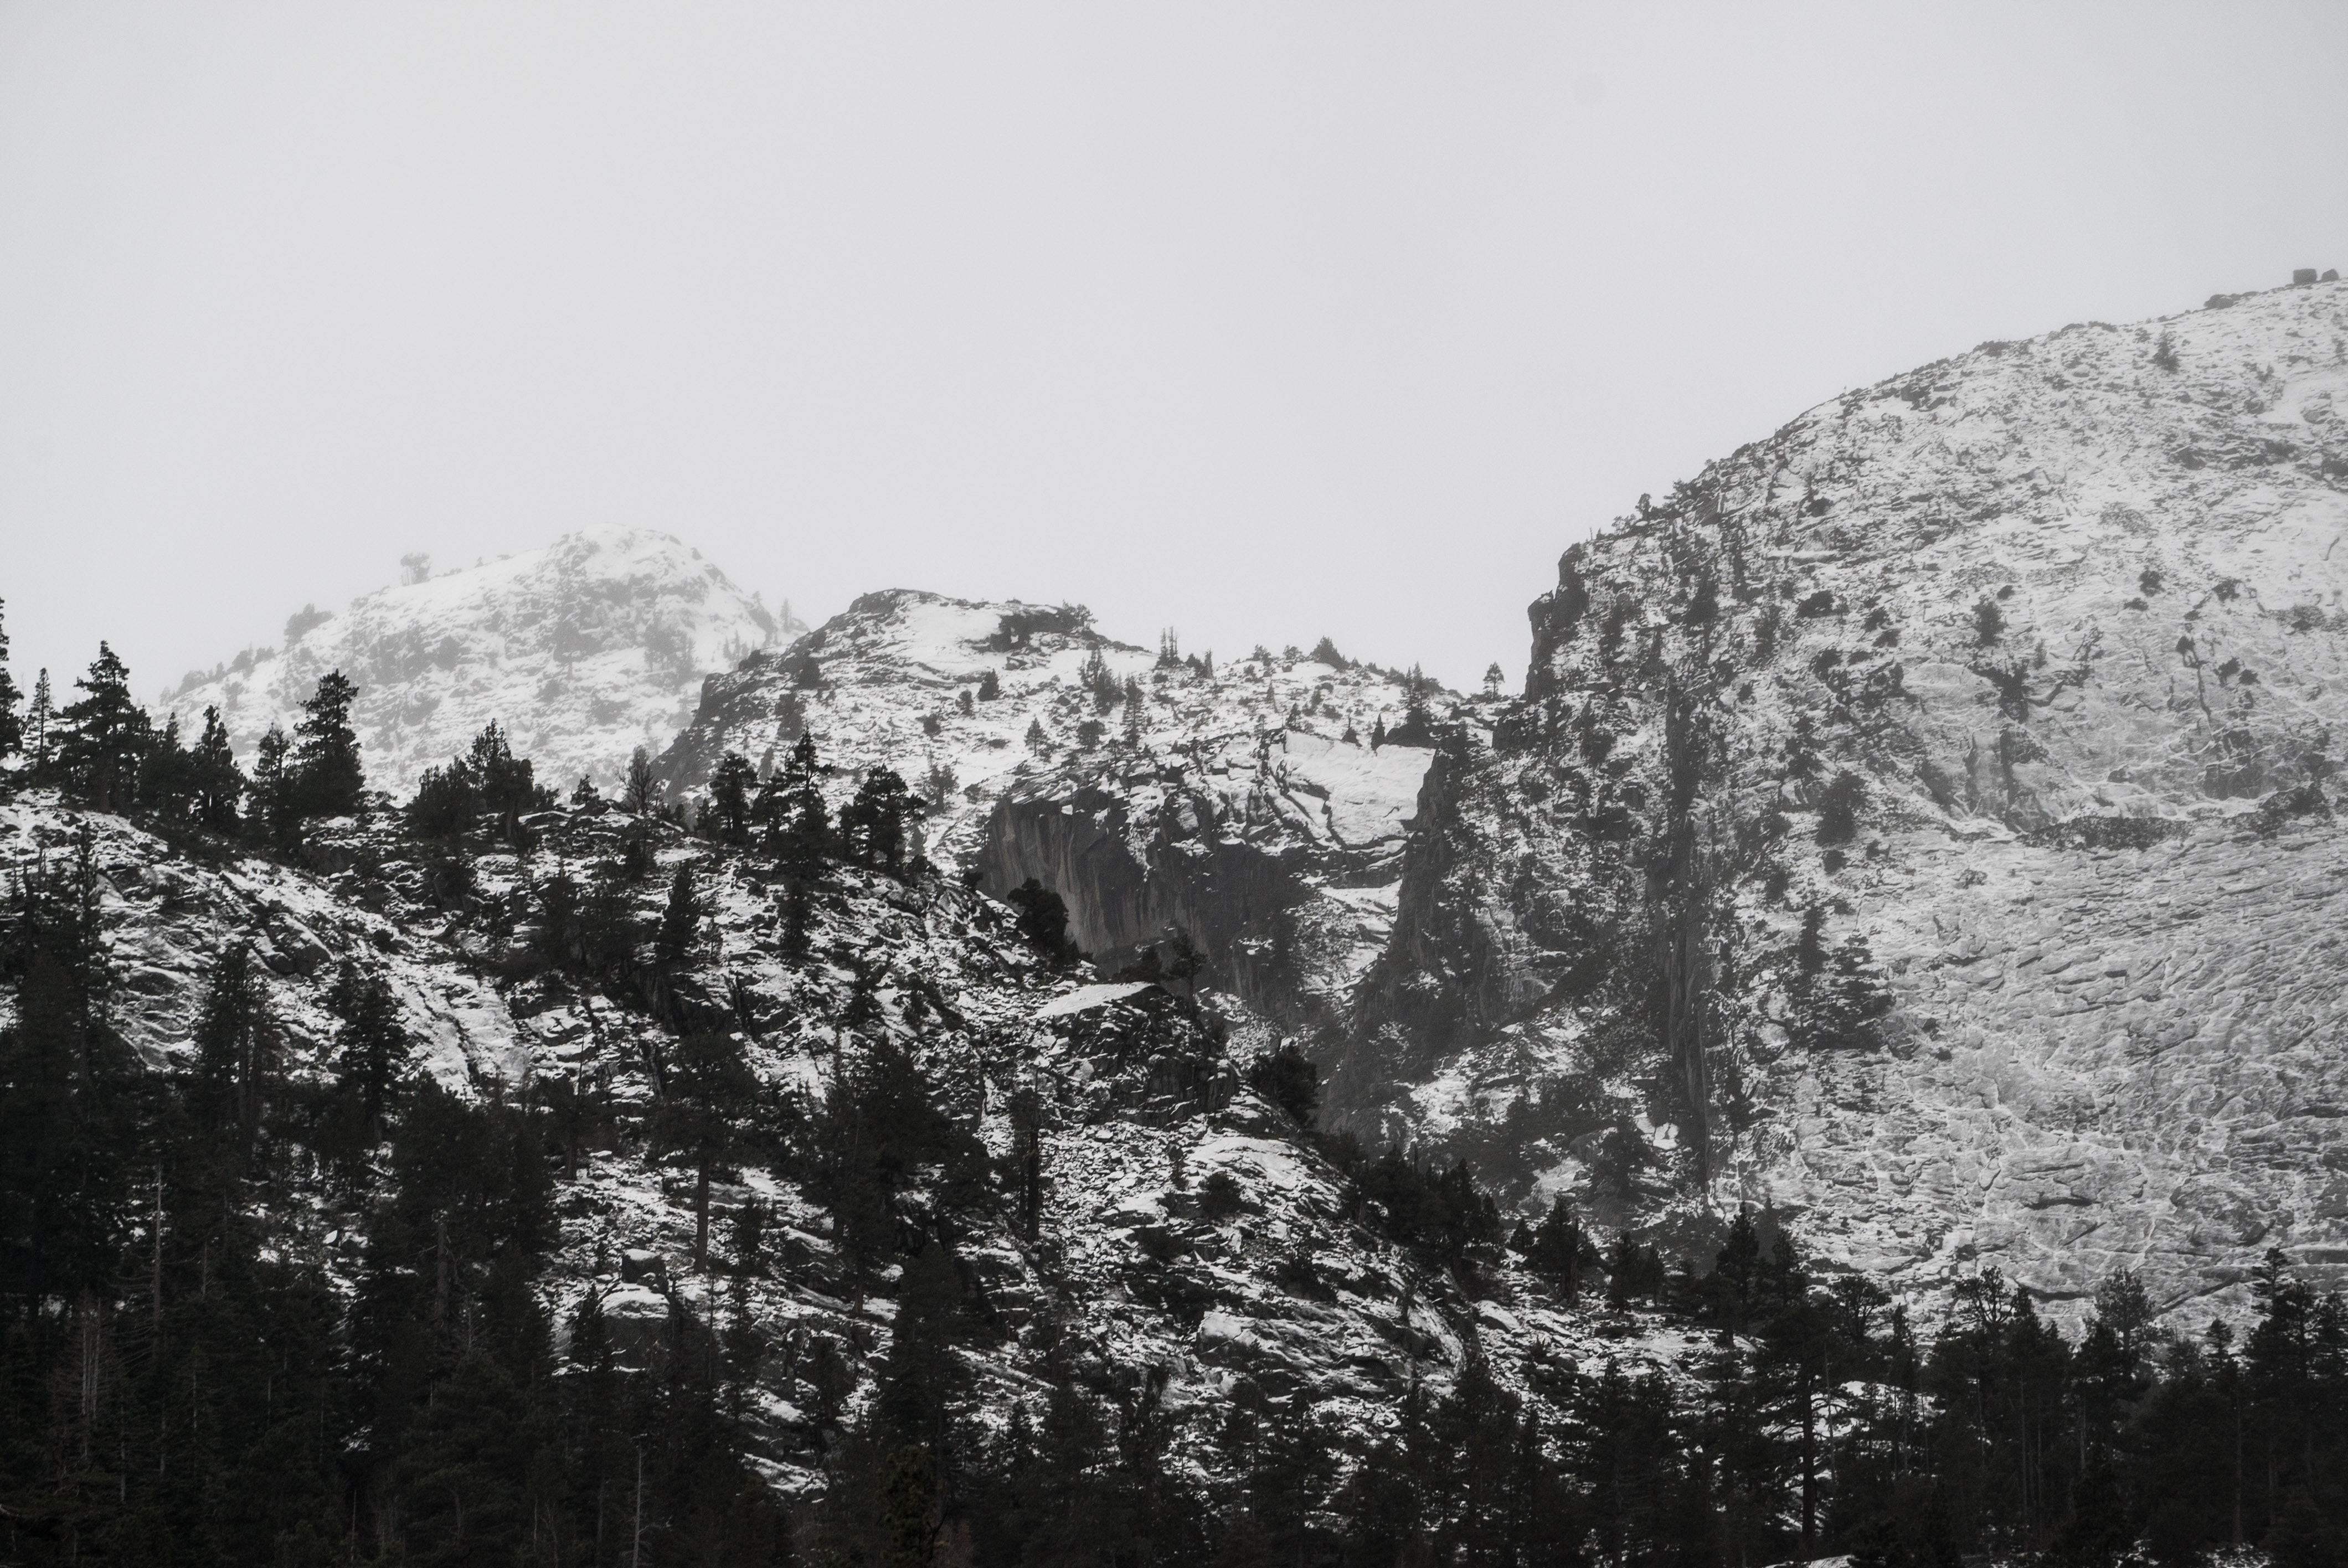 grayscale photo of pine trees and mountain